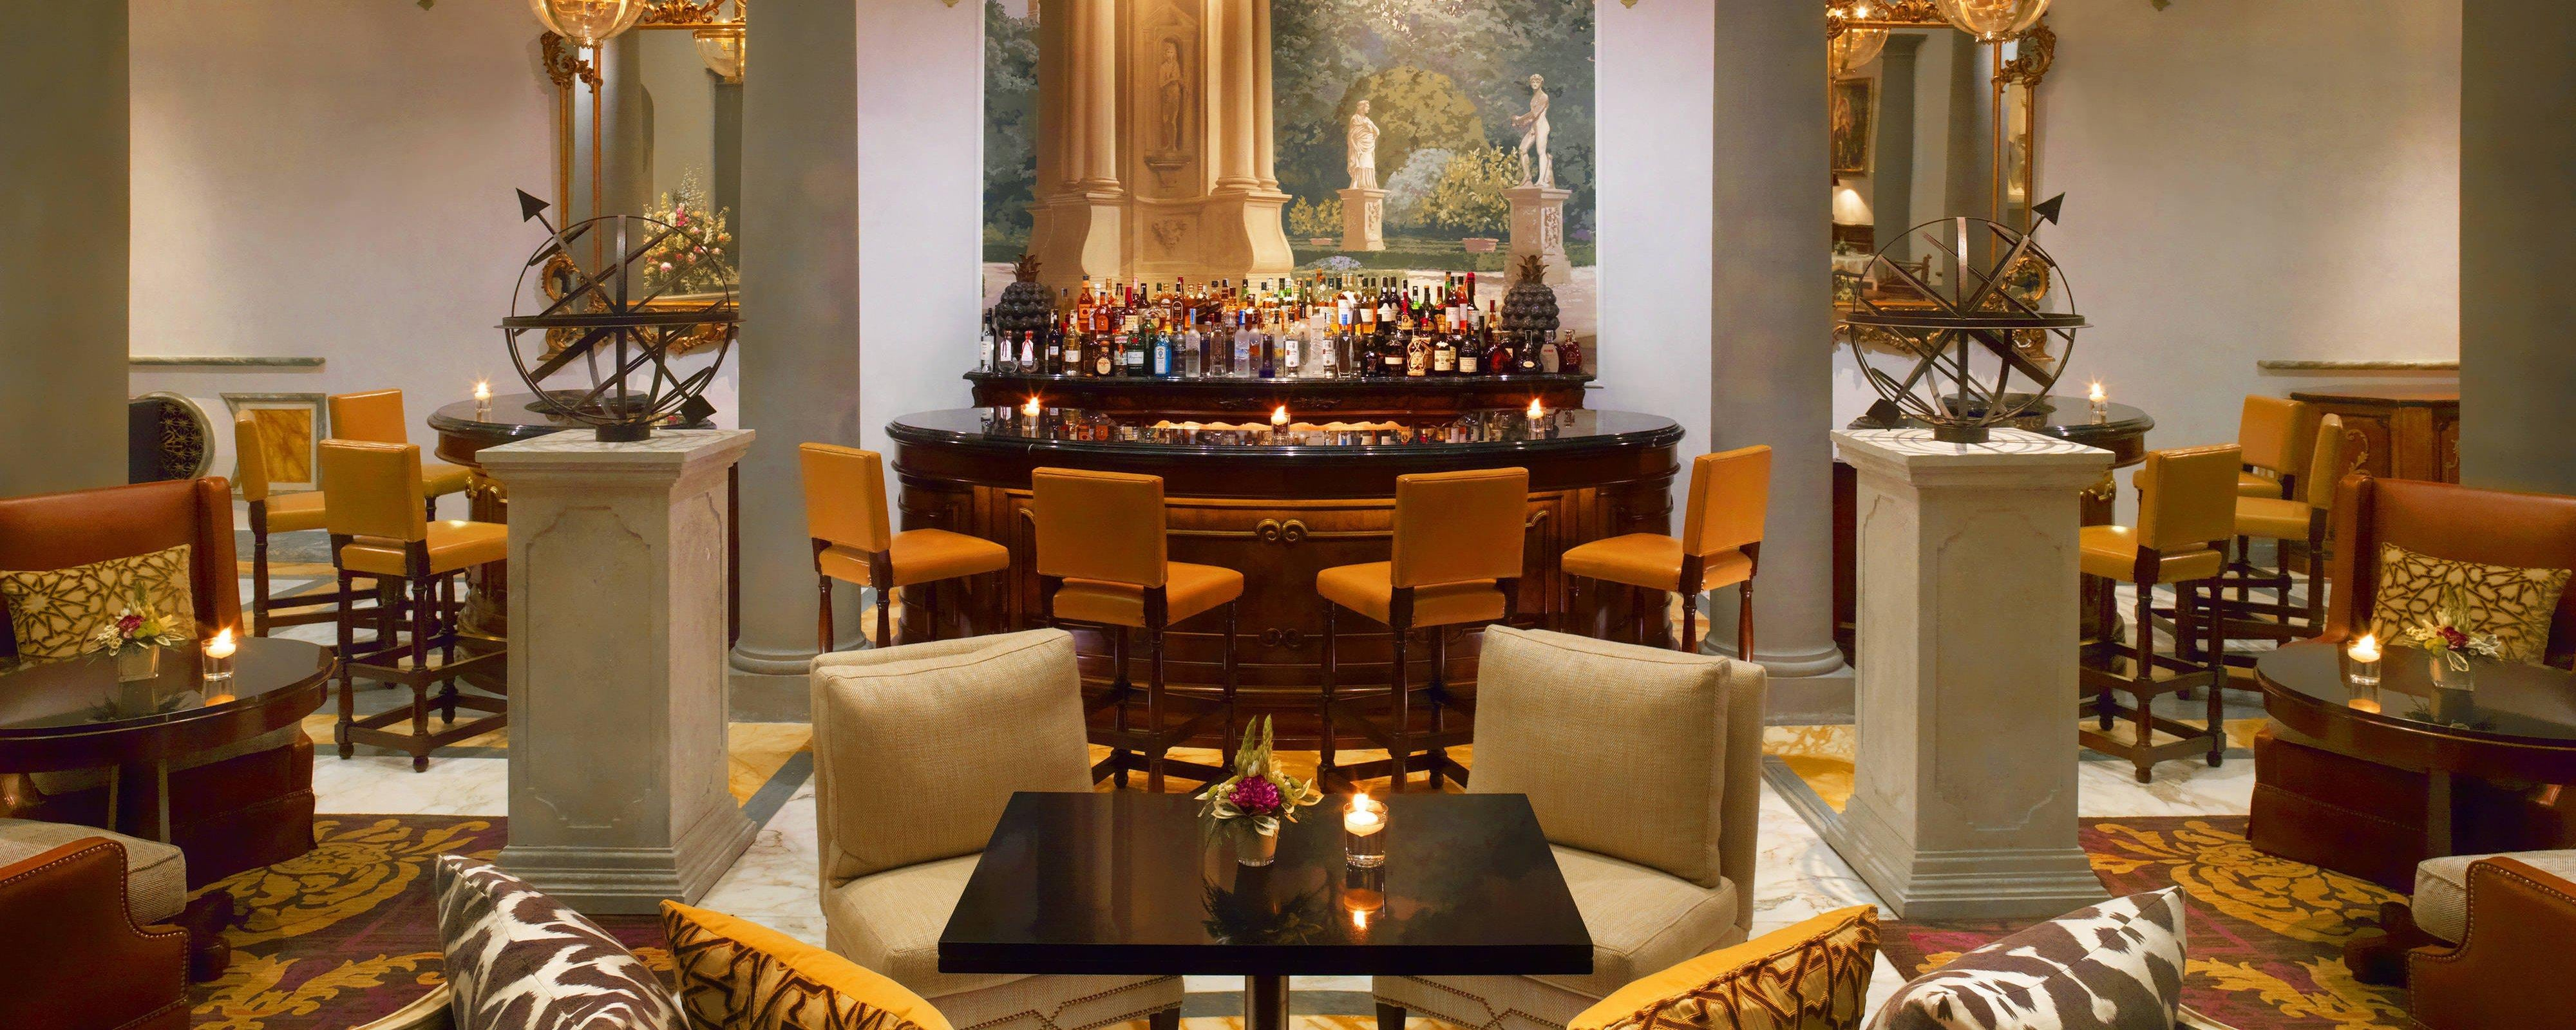 Florence hotel restaurants and lounges | The St. Regis Florence